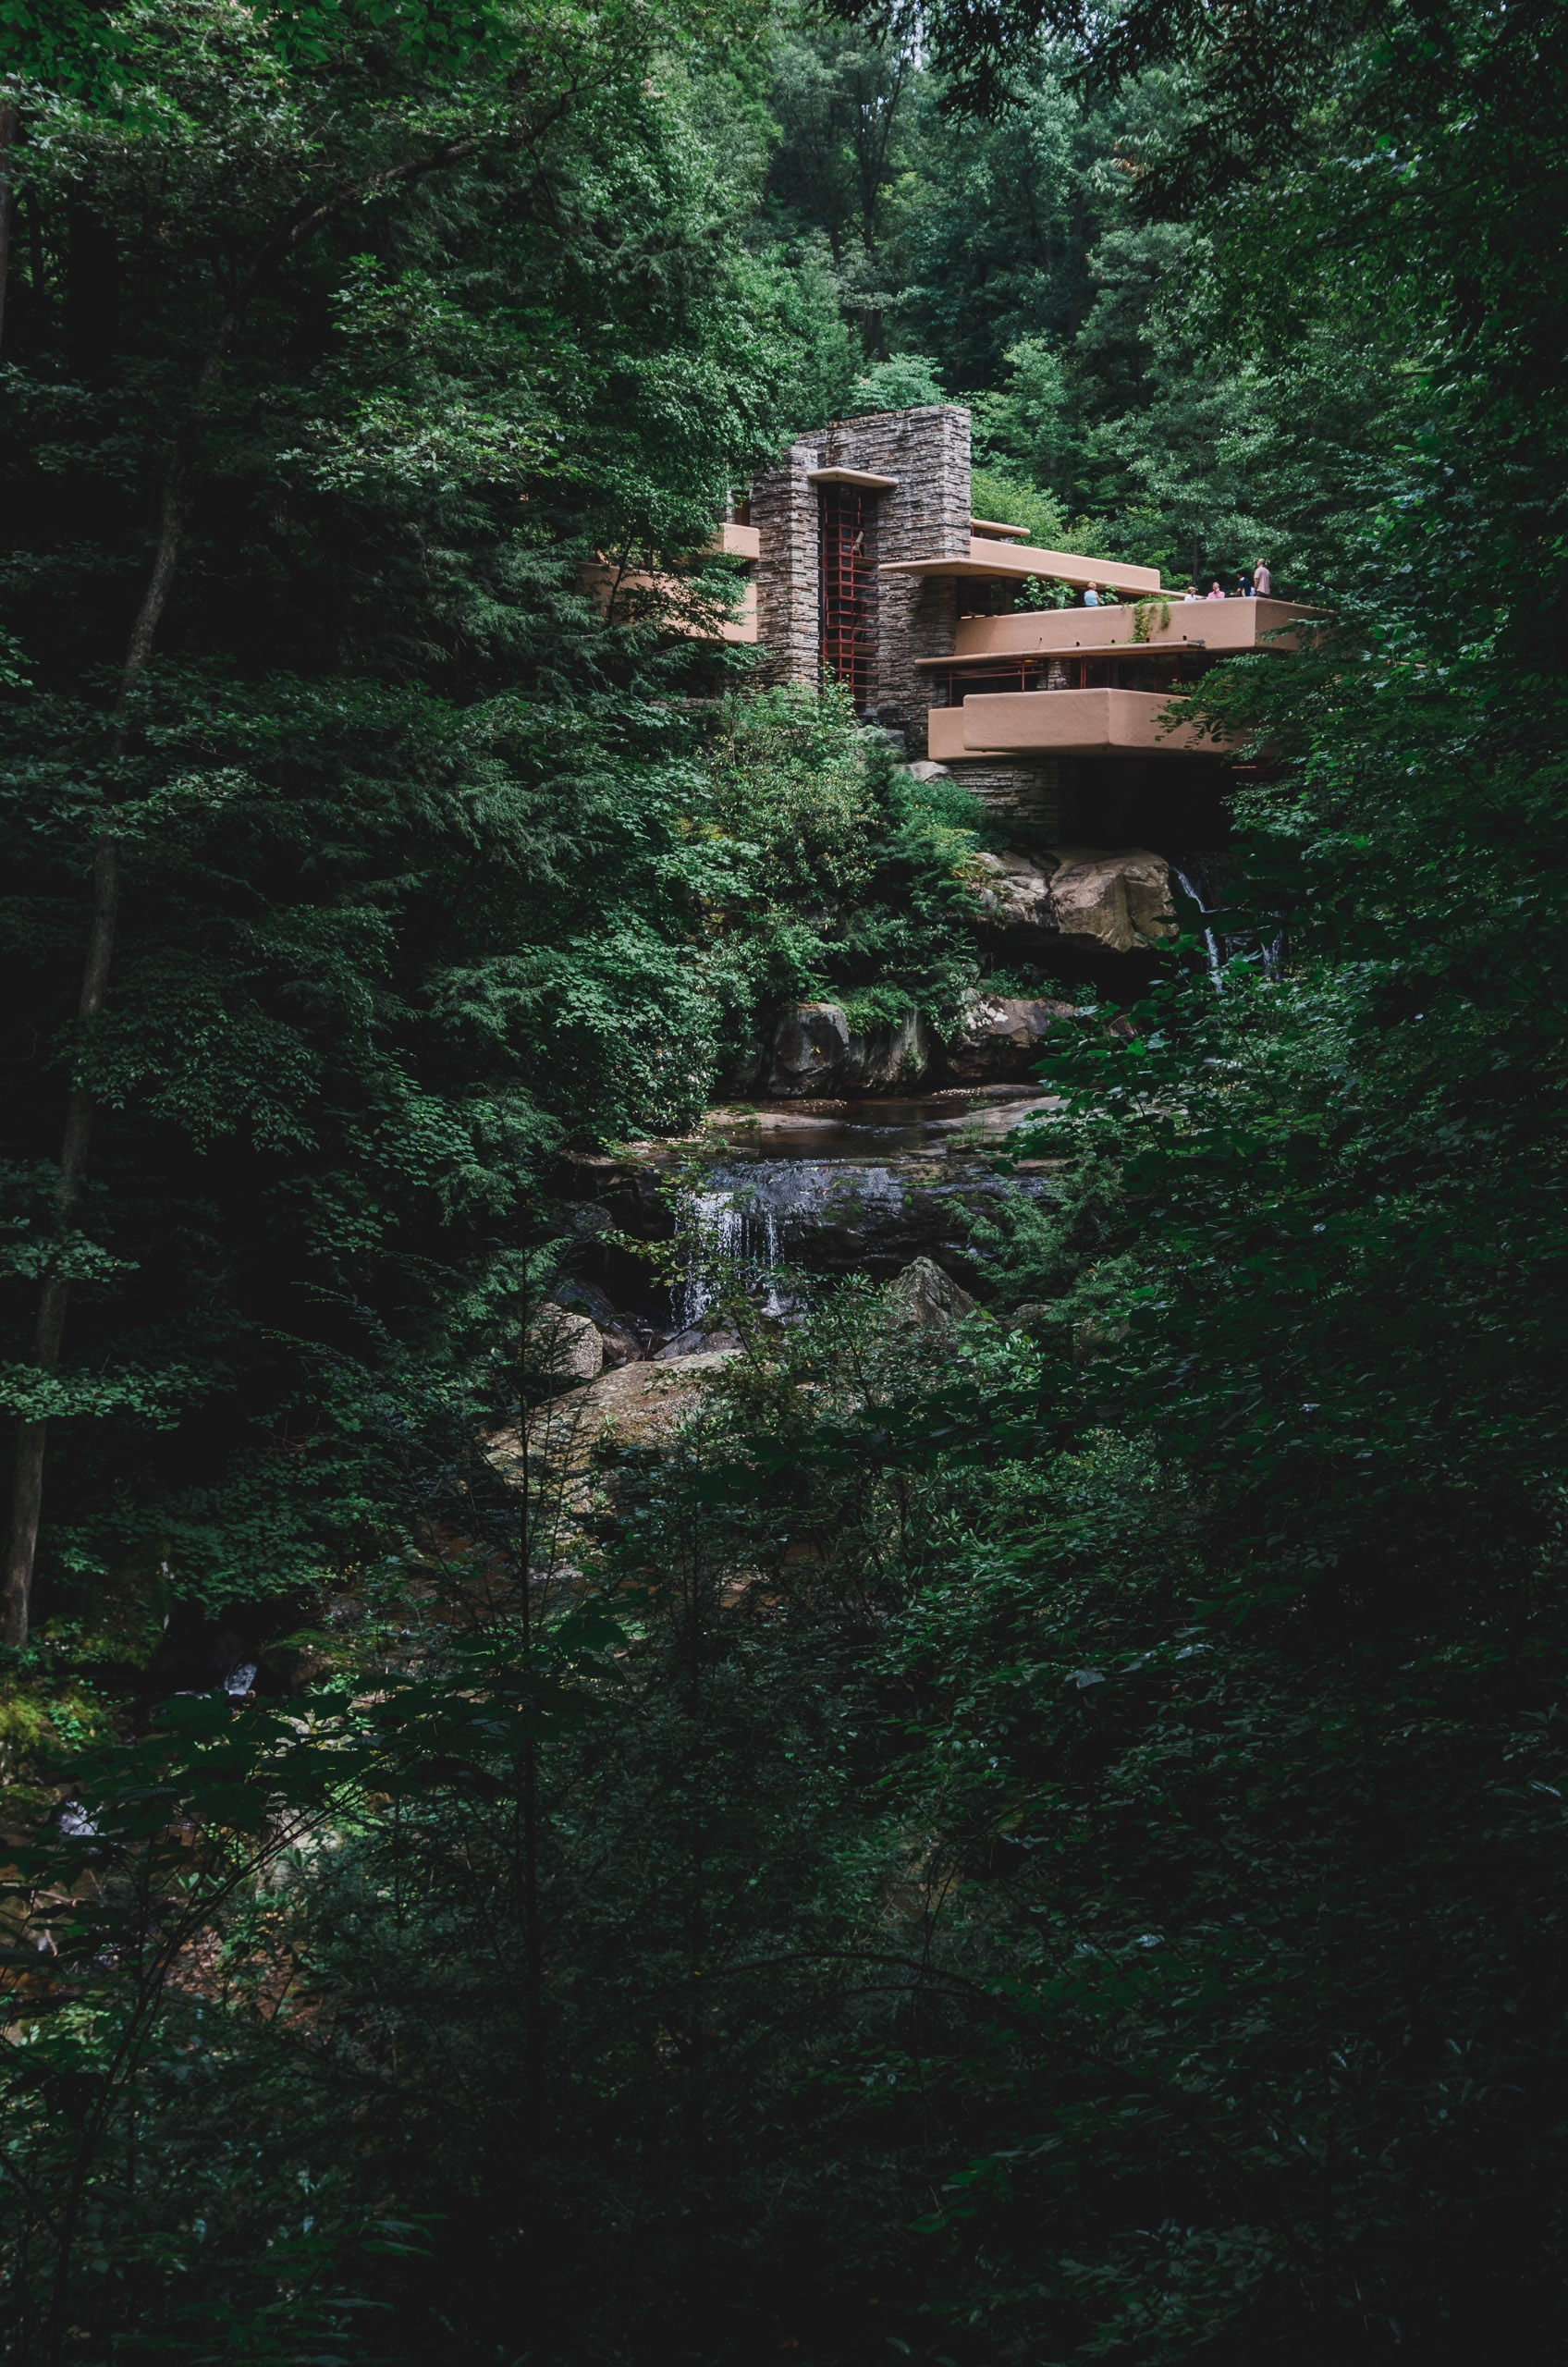 The View of Fallingwater - Part II